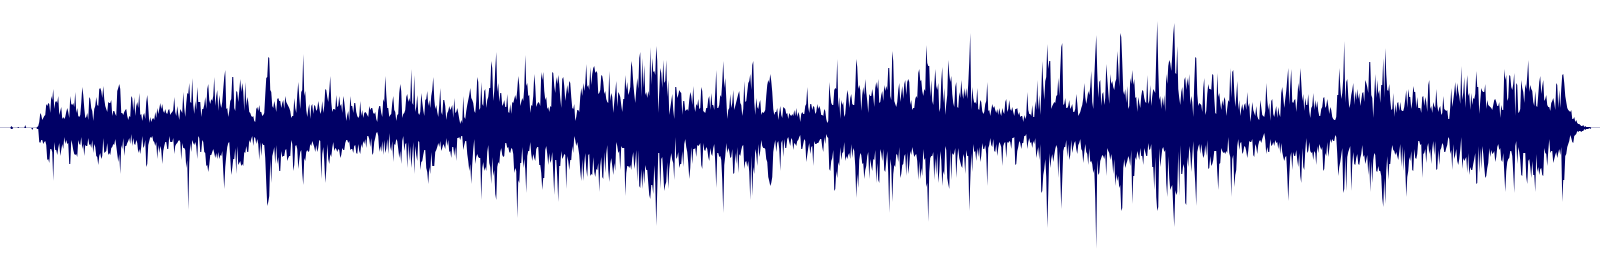 waveform of track #132816